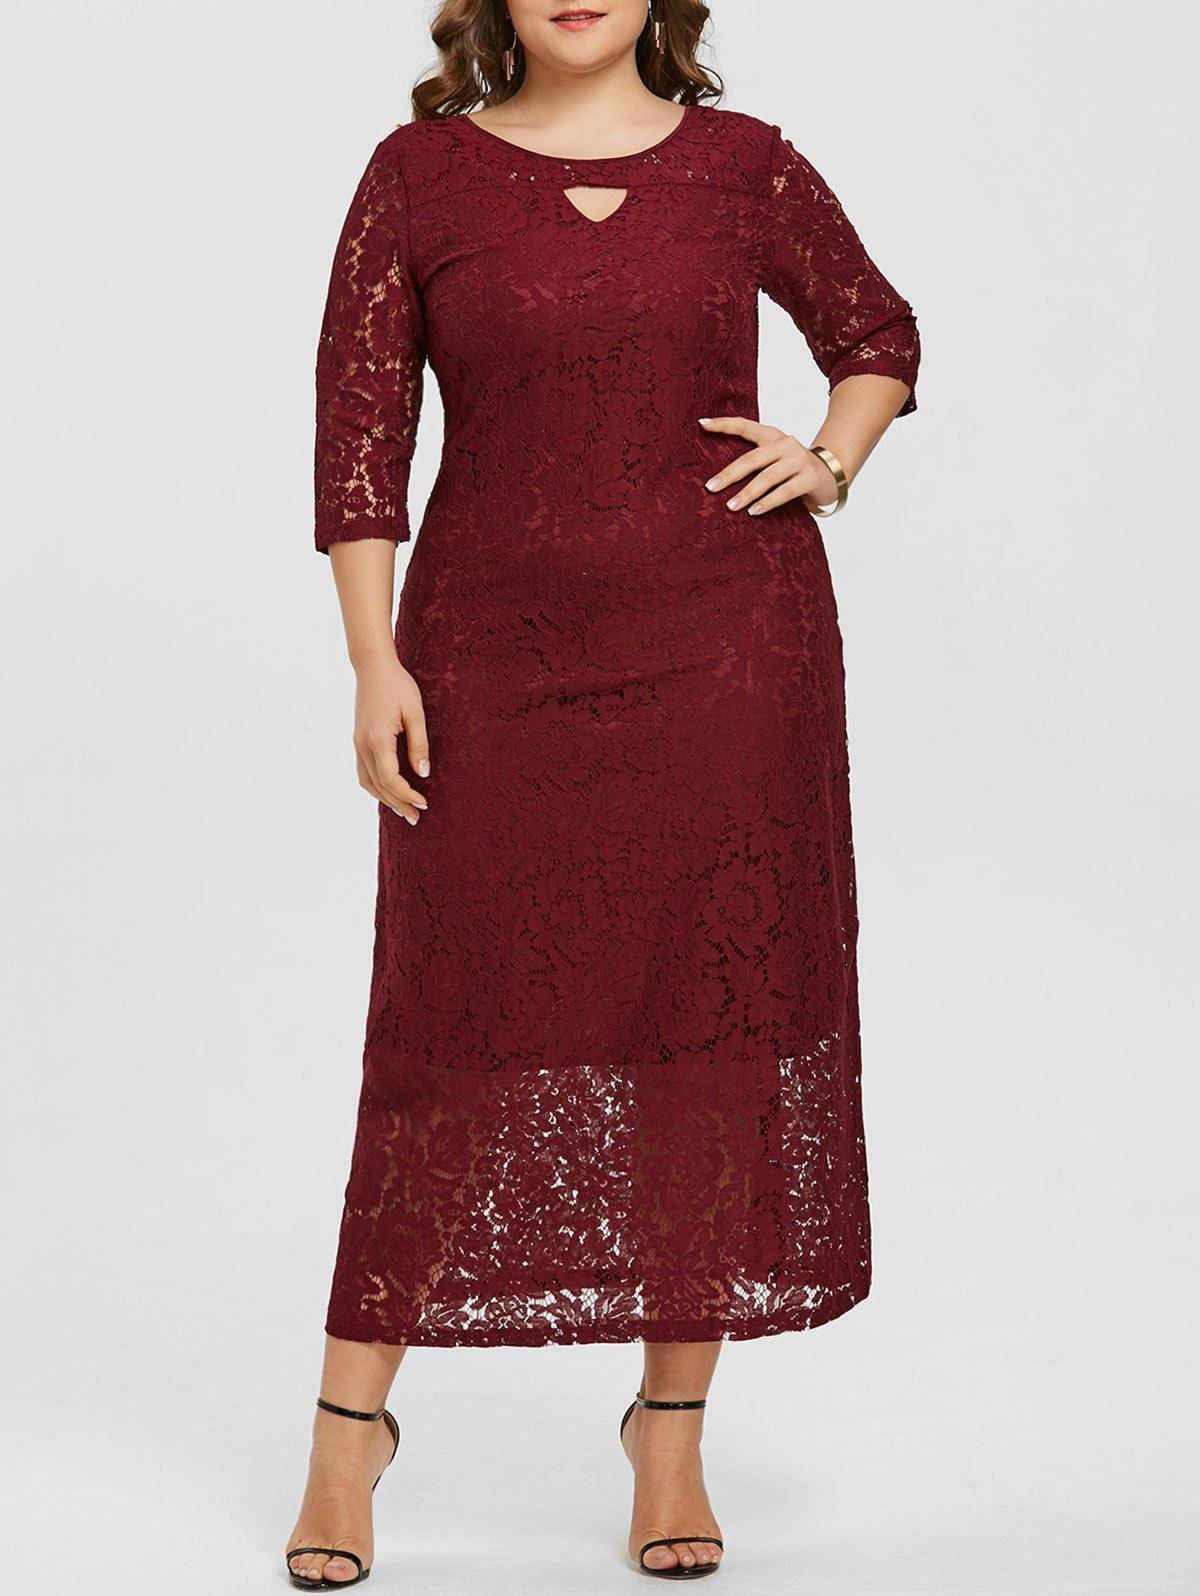 Fancy Floral Lace Keyhole Plus Size Dress